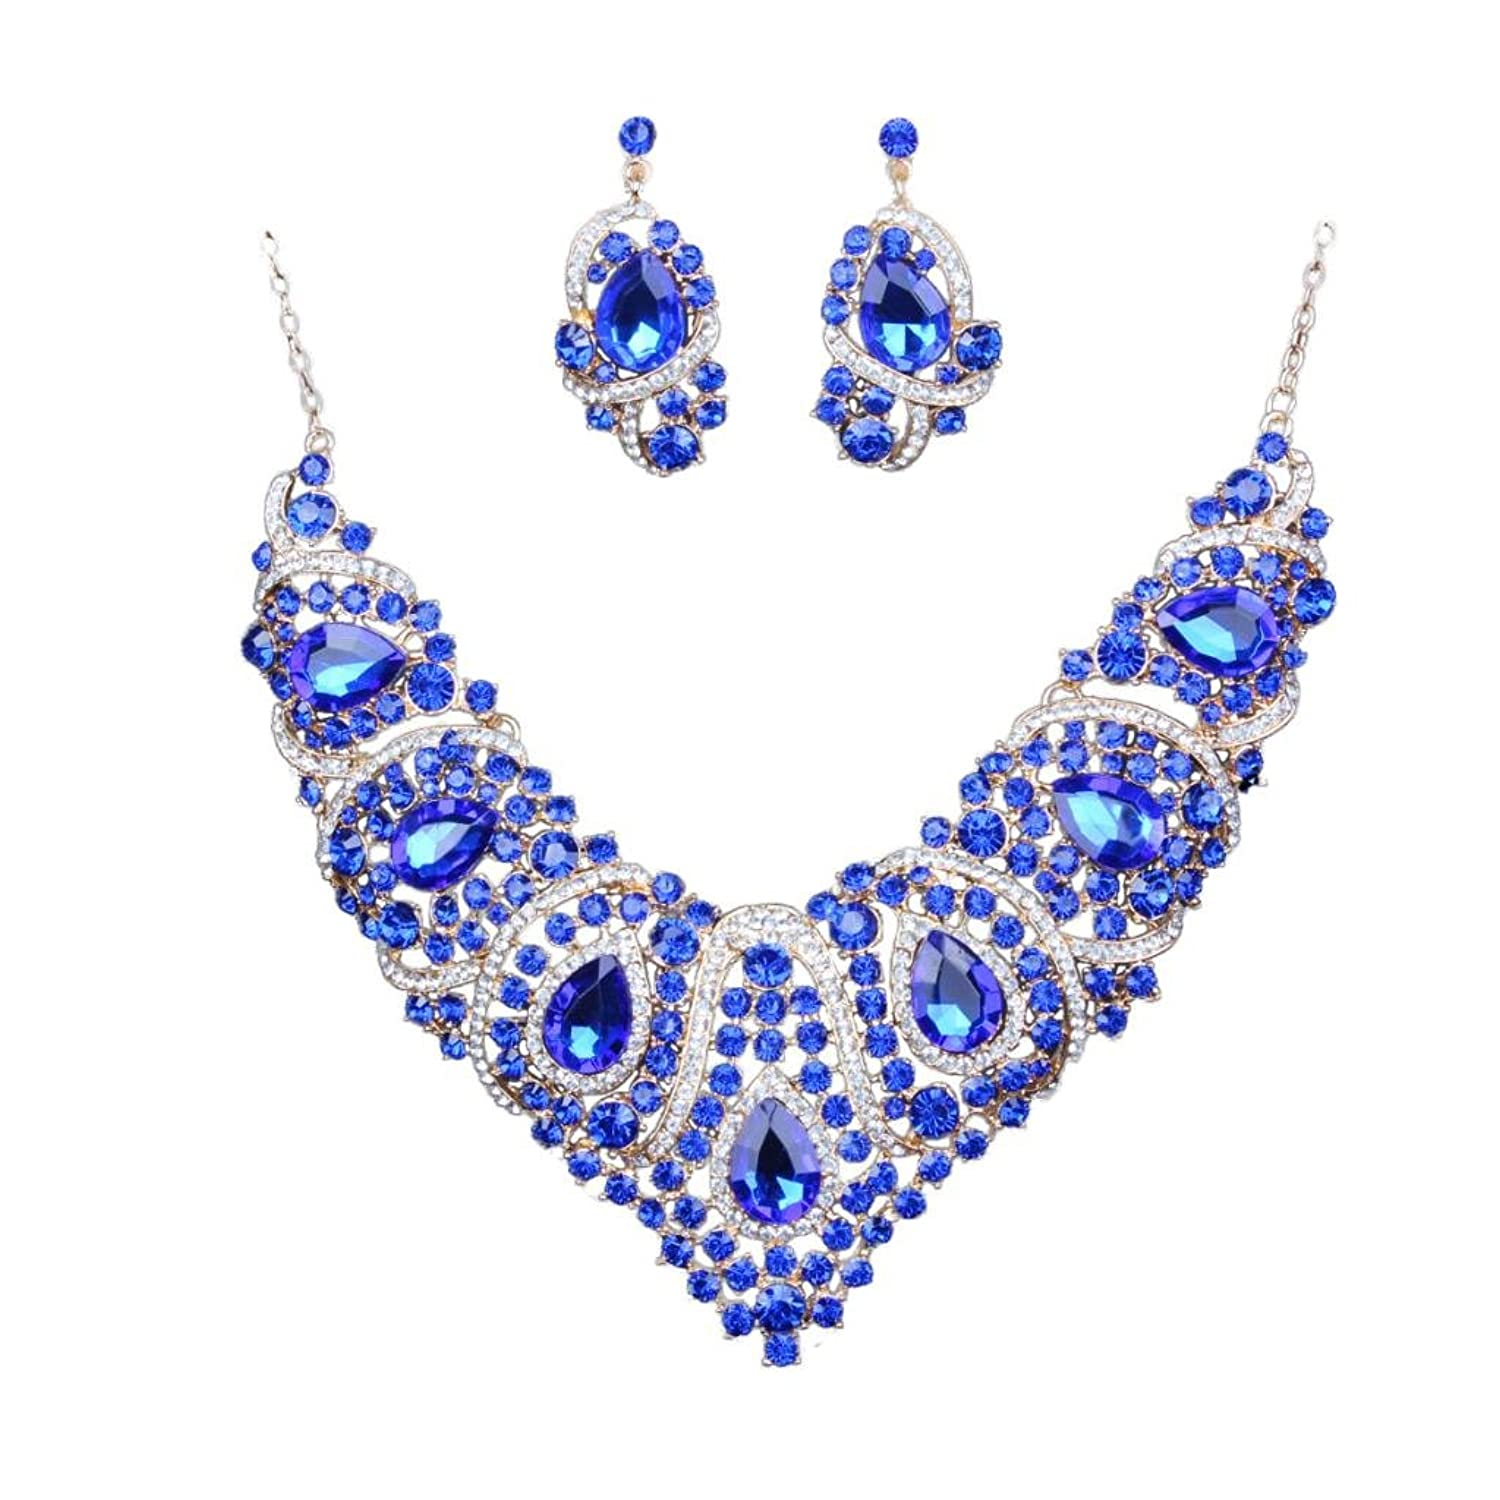 MagiDeal Luxury Opal Crystal Tulip Pendant Necklace Earring Wedding Bride Jewelry Set 3rtToPu